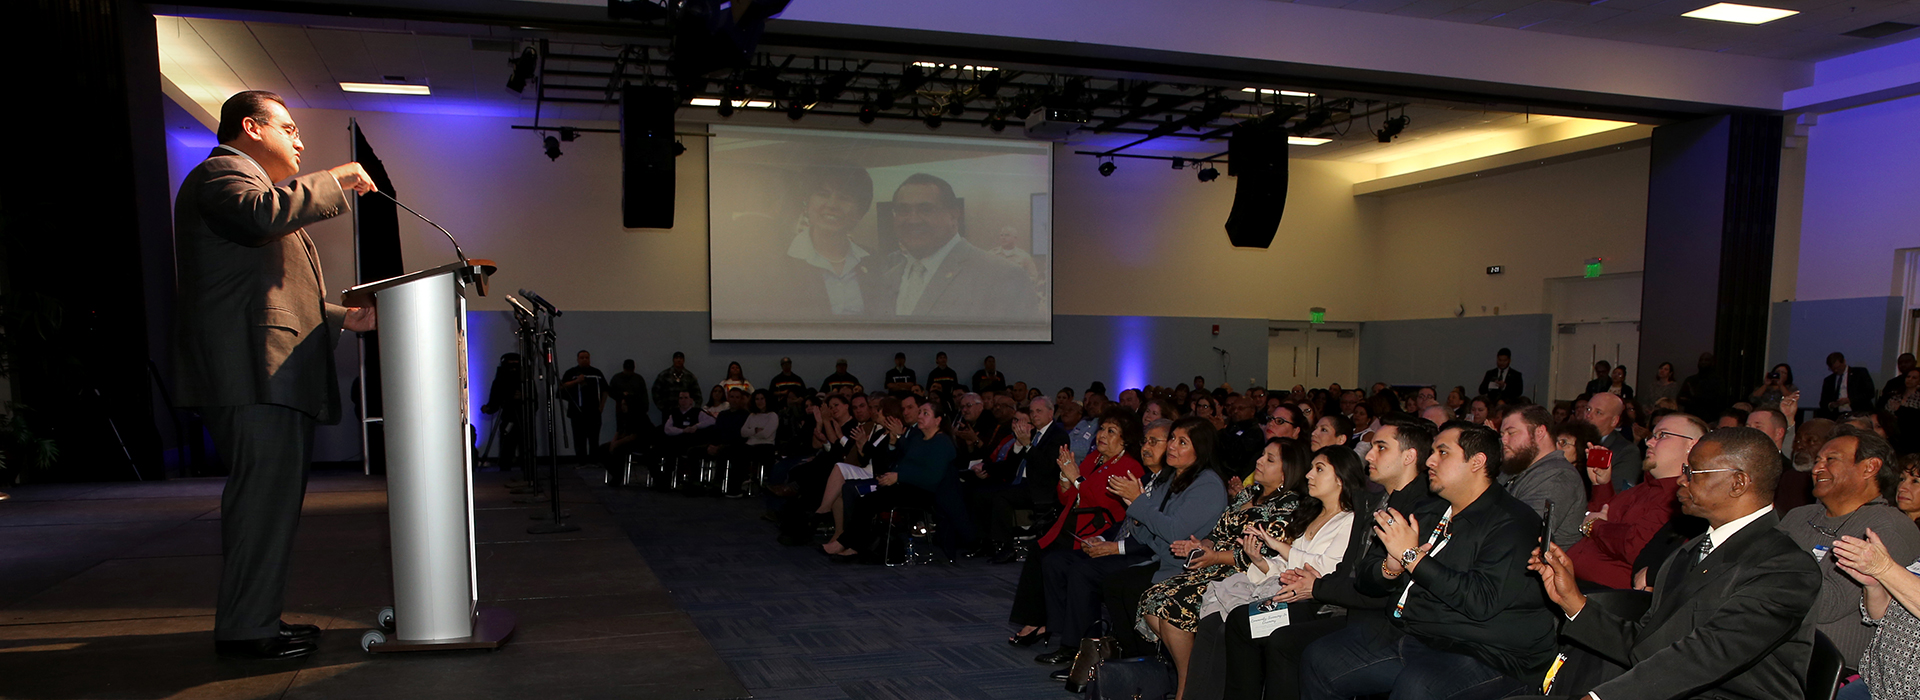 Assemblymember Ramos returns to CSUSB for historic swearing-in ceremony